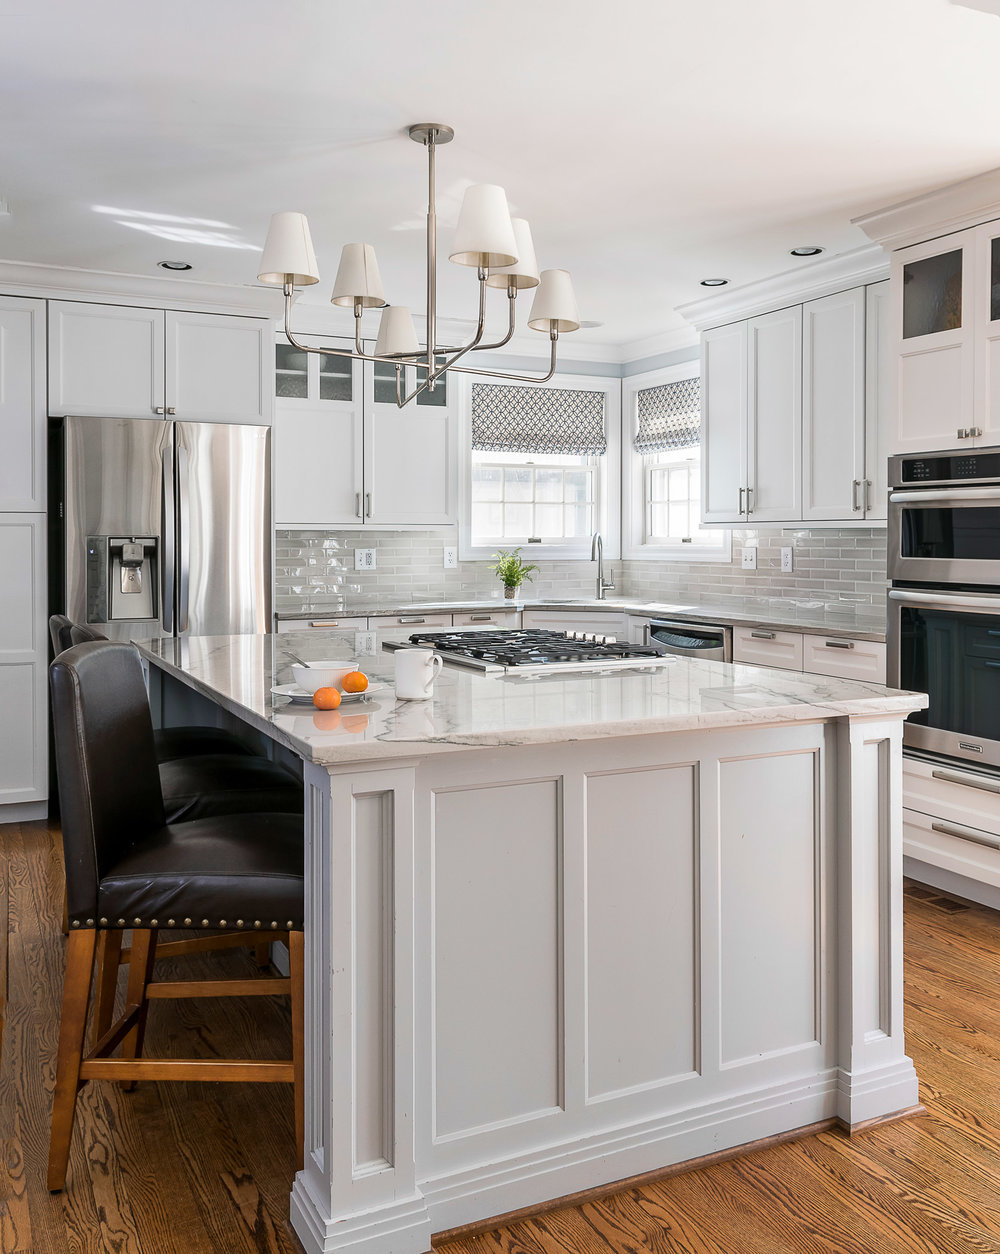 10 Kitchen And Home Decor Items Every 20 Something Needs: Elegant Kirkwood Kitchen — LU Design